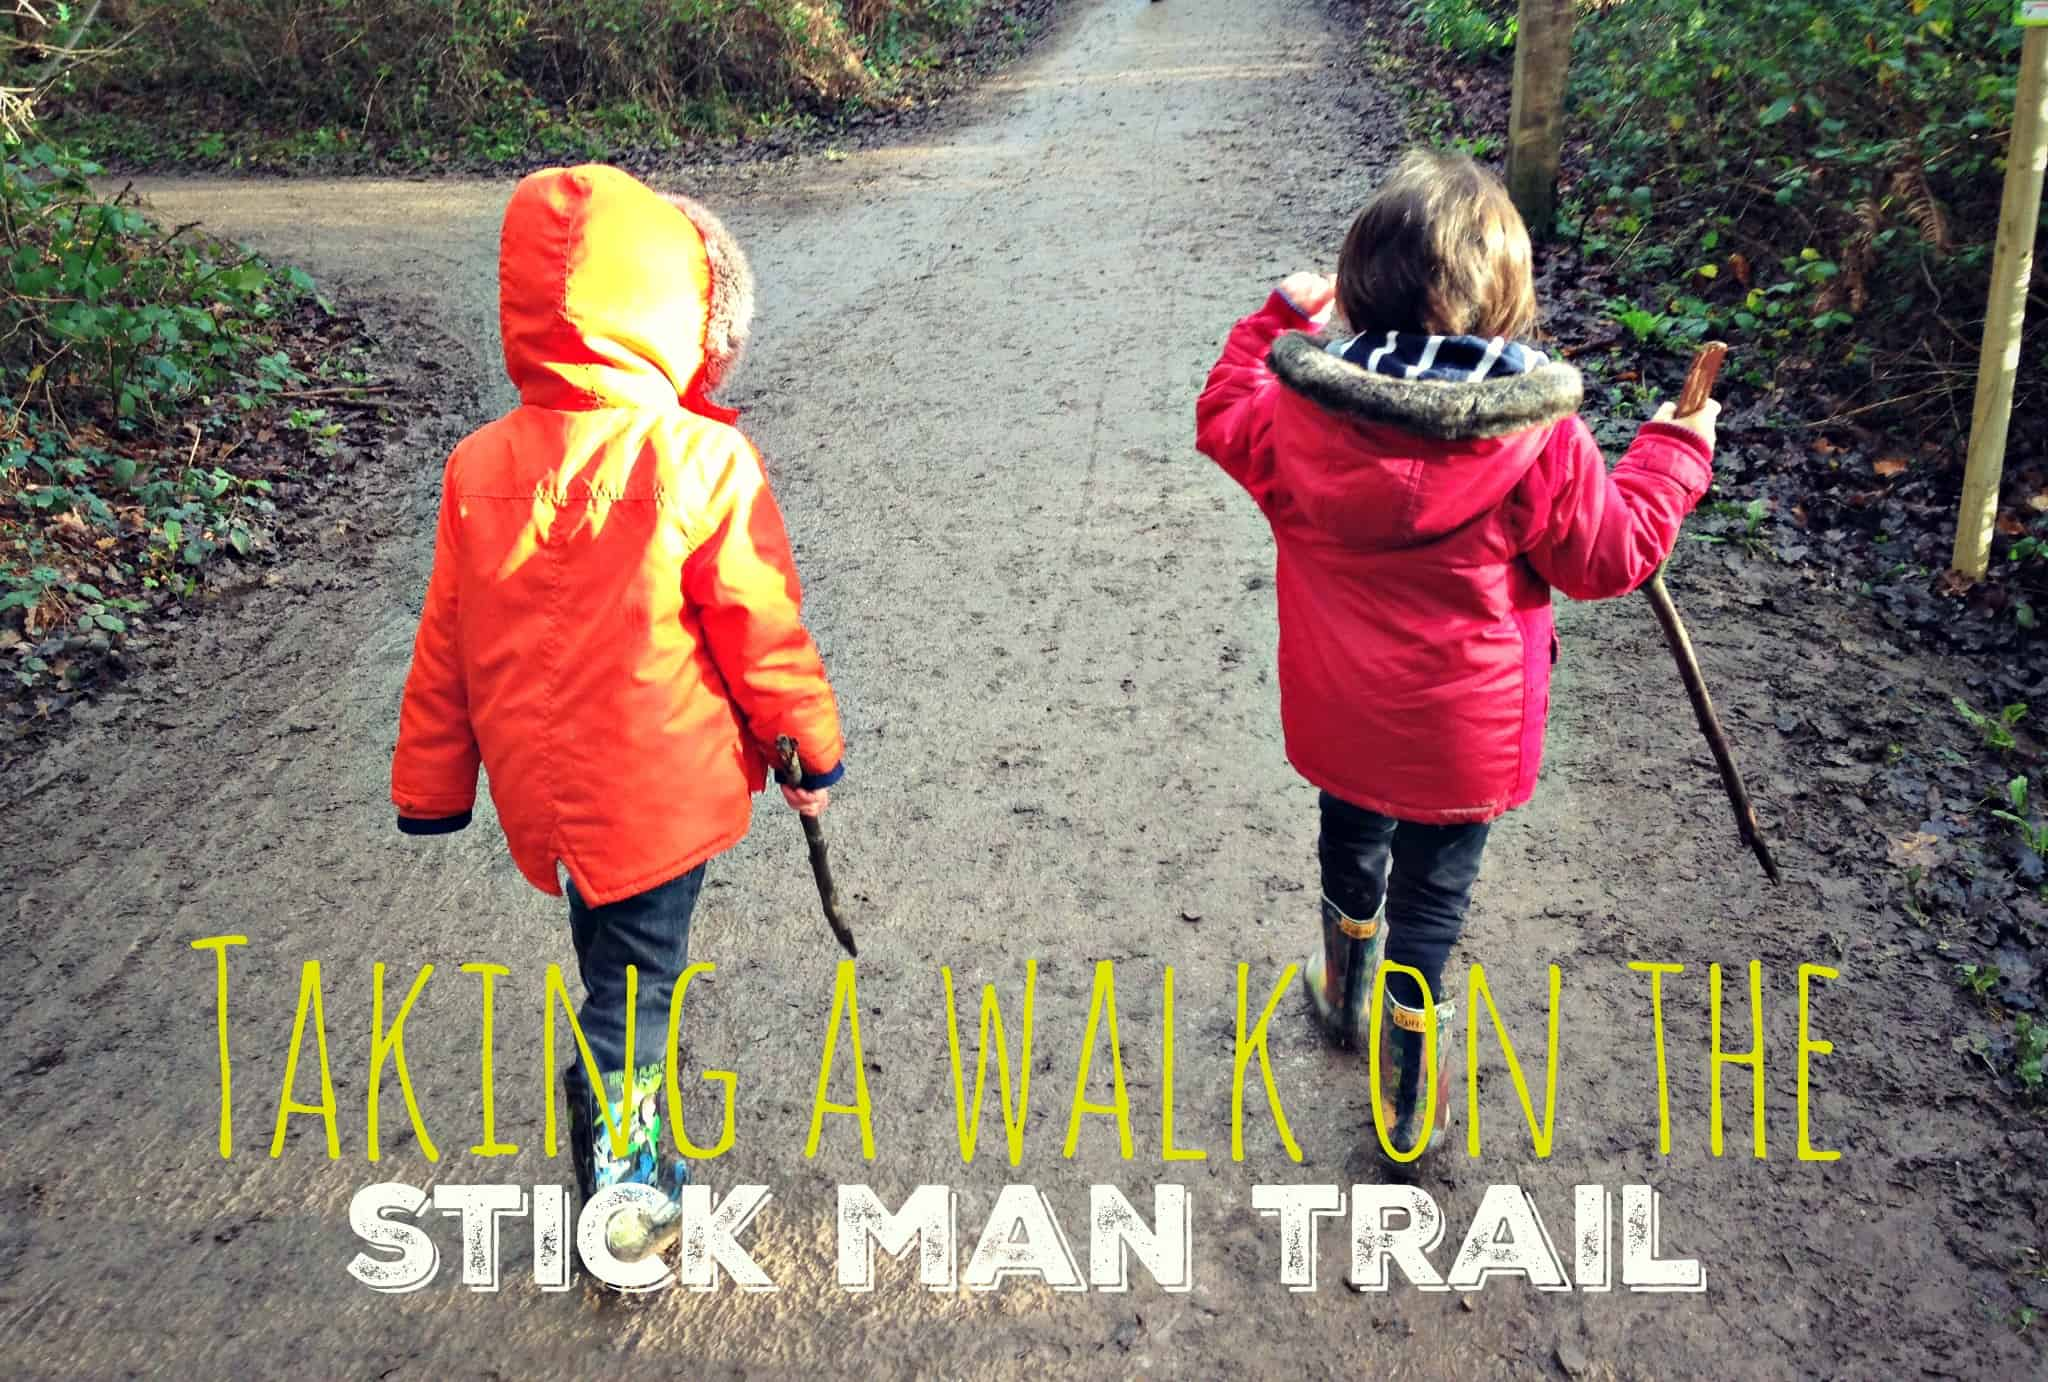 Taking a walk on the Stick Man Trail